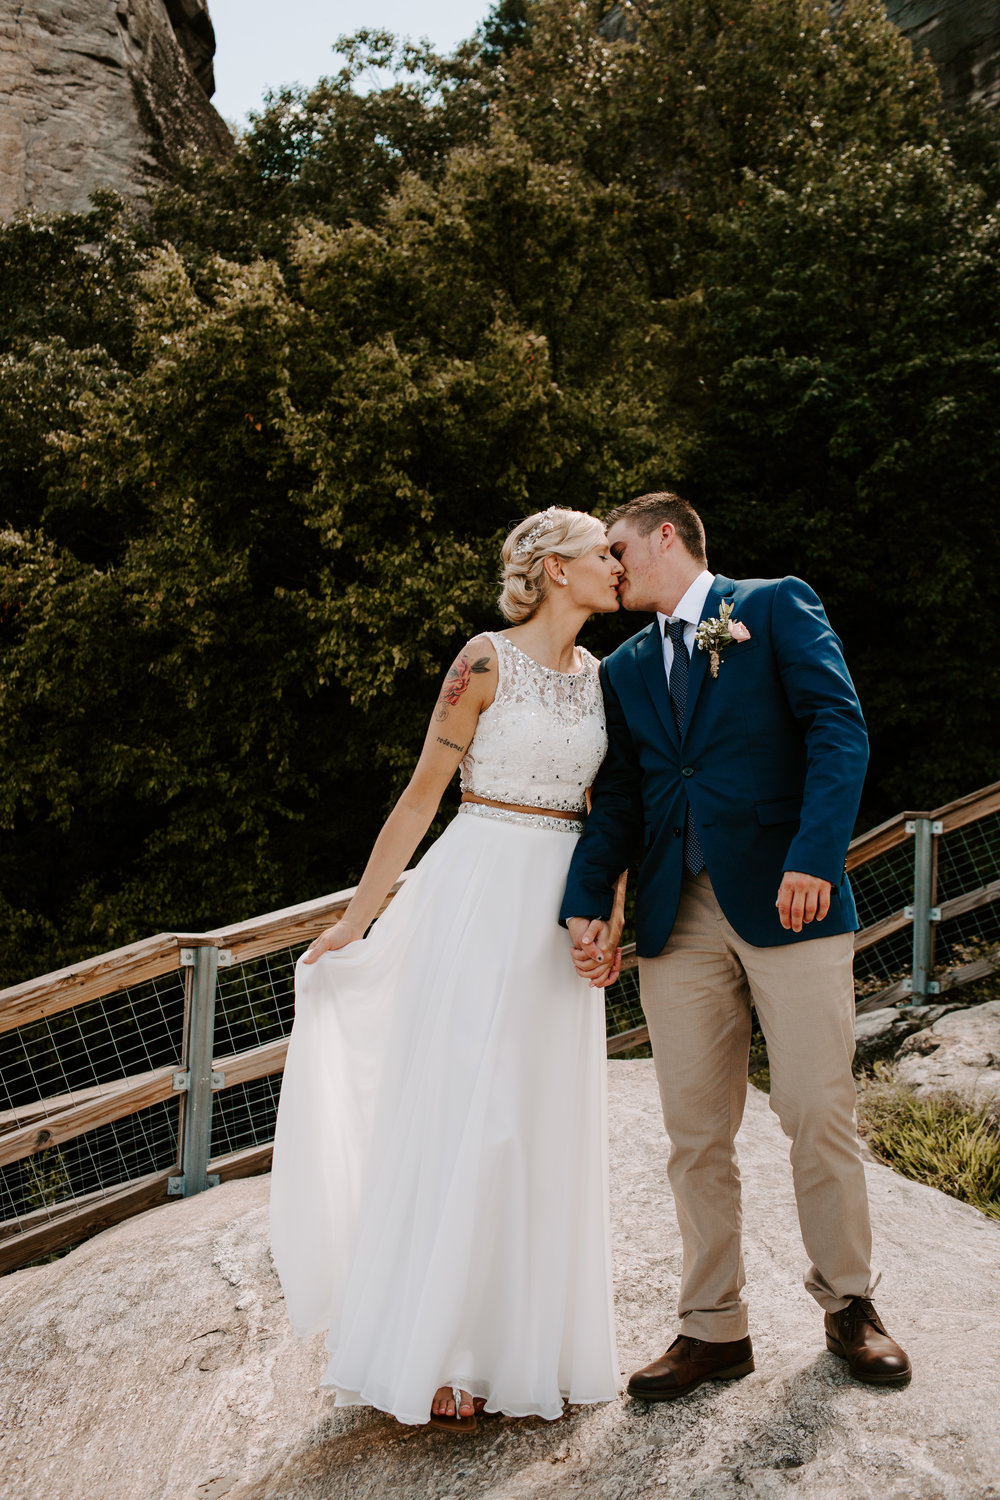 Miranda&braedon_ashevilleelopement (40 of 101).jpg